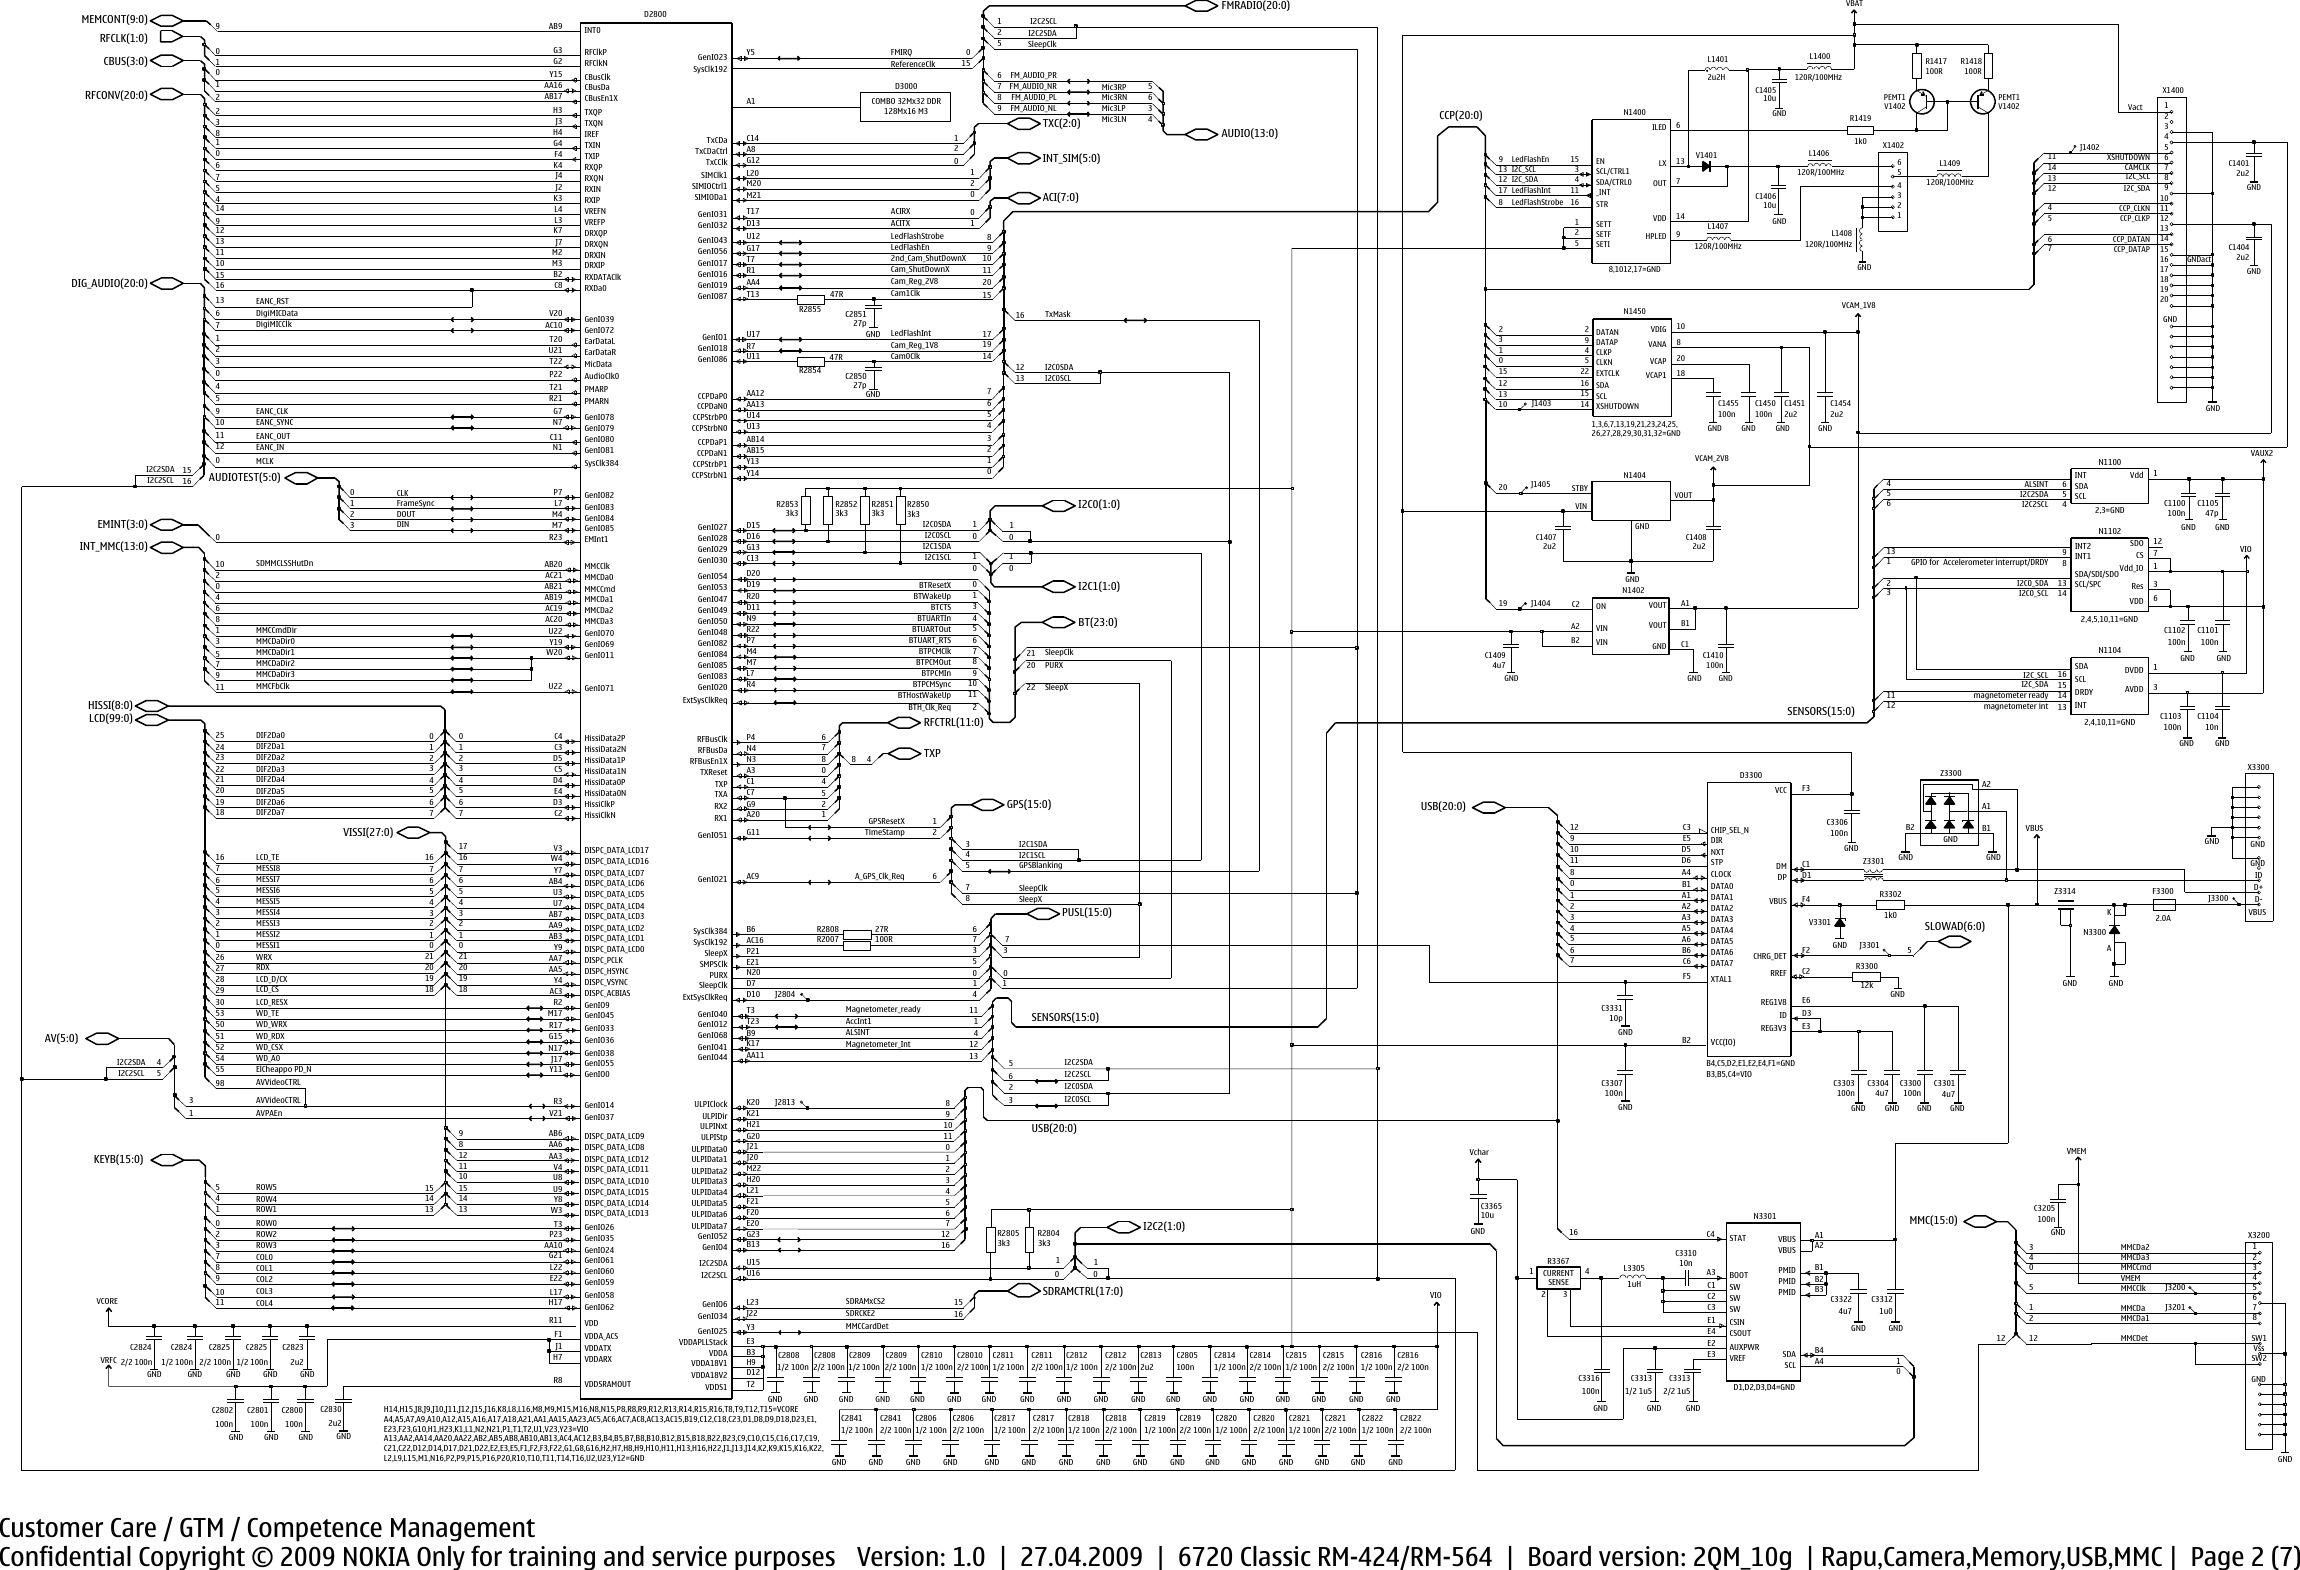 6720 Clic Service Schematics Nokia 6720c Rm 424, 564 Nokia Schematic on nokia 2600 classic, nokia x2-00, nokia flasher, nokia lumia with flashlight, nokia 1616 keypad problem, nokia solution, nokia 6100i, nokia x1-01 mic jumper,